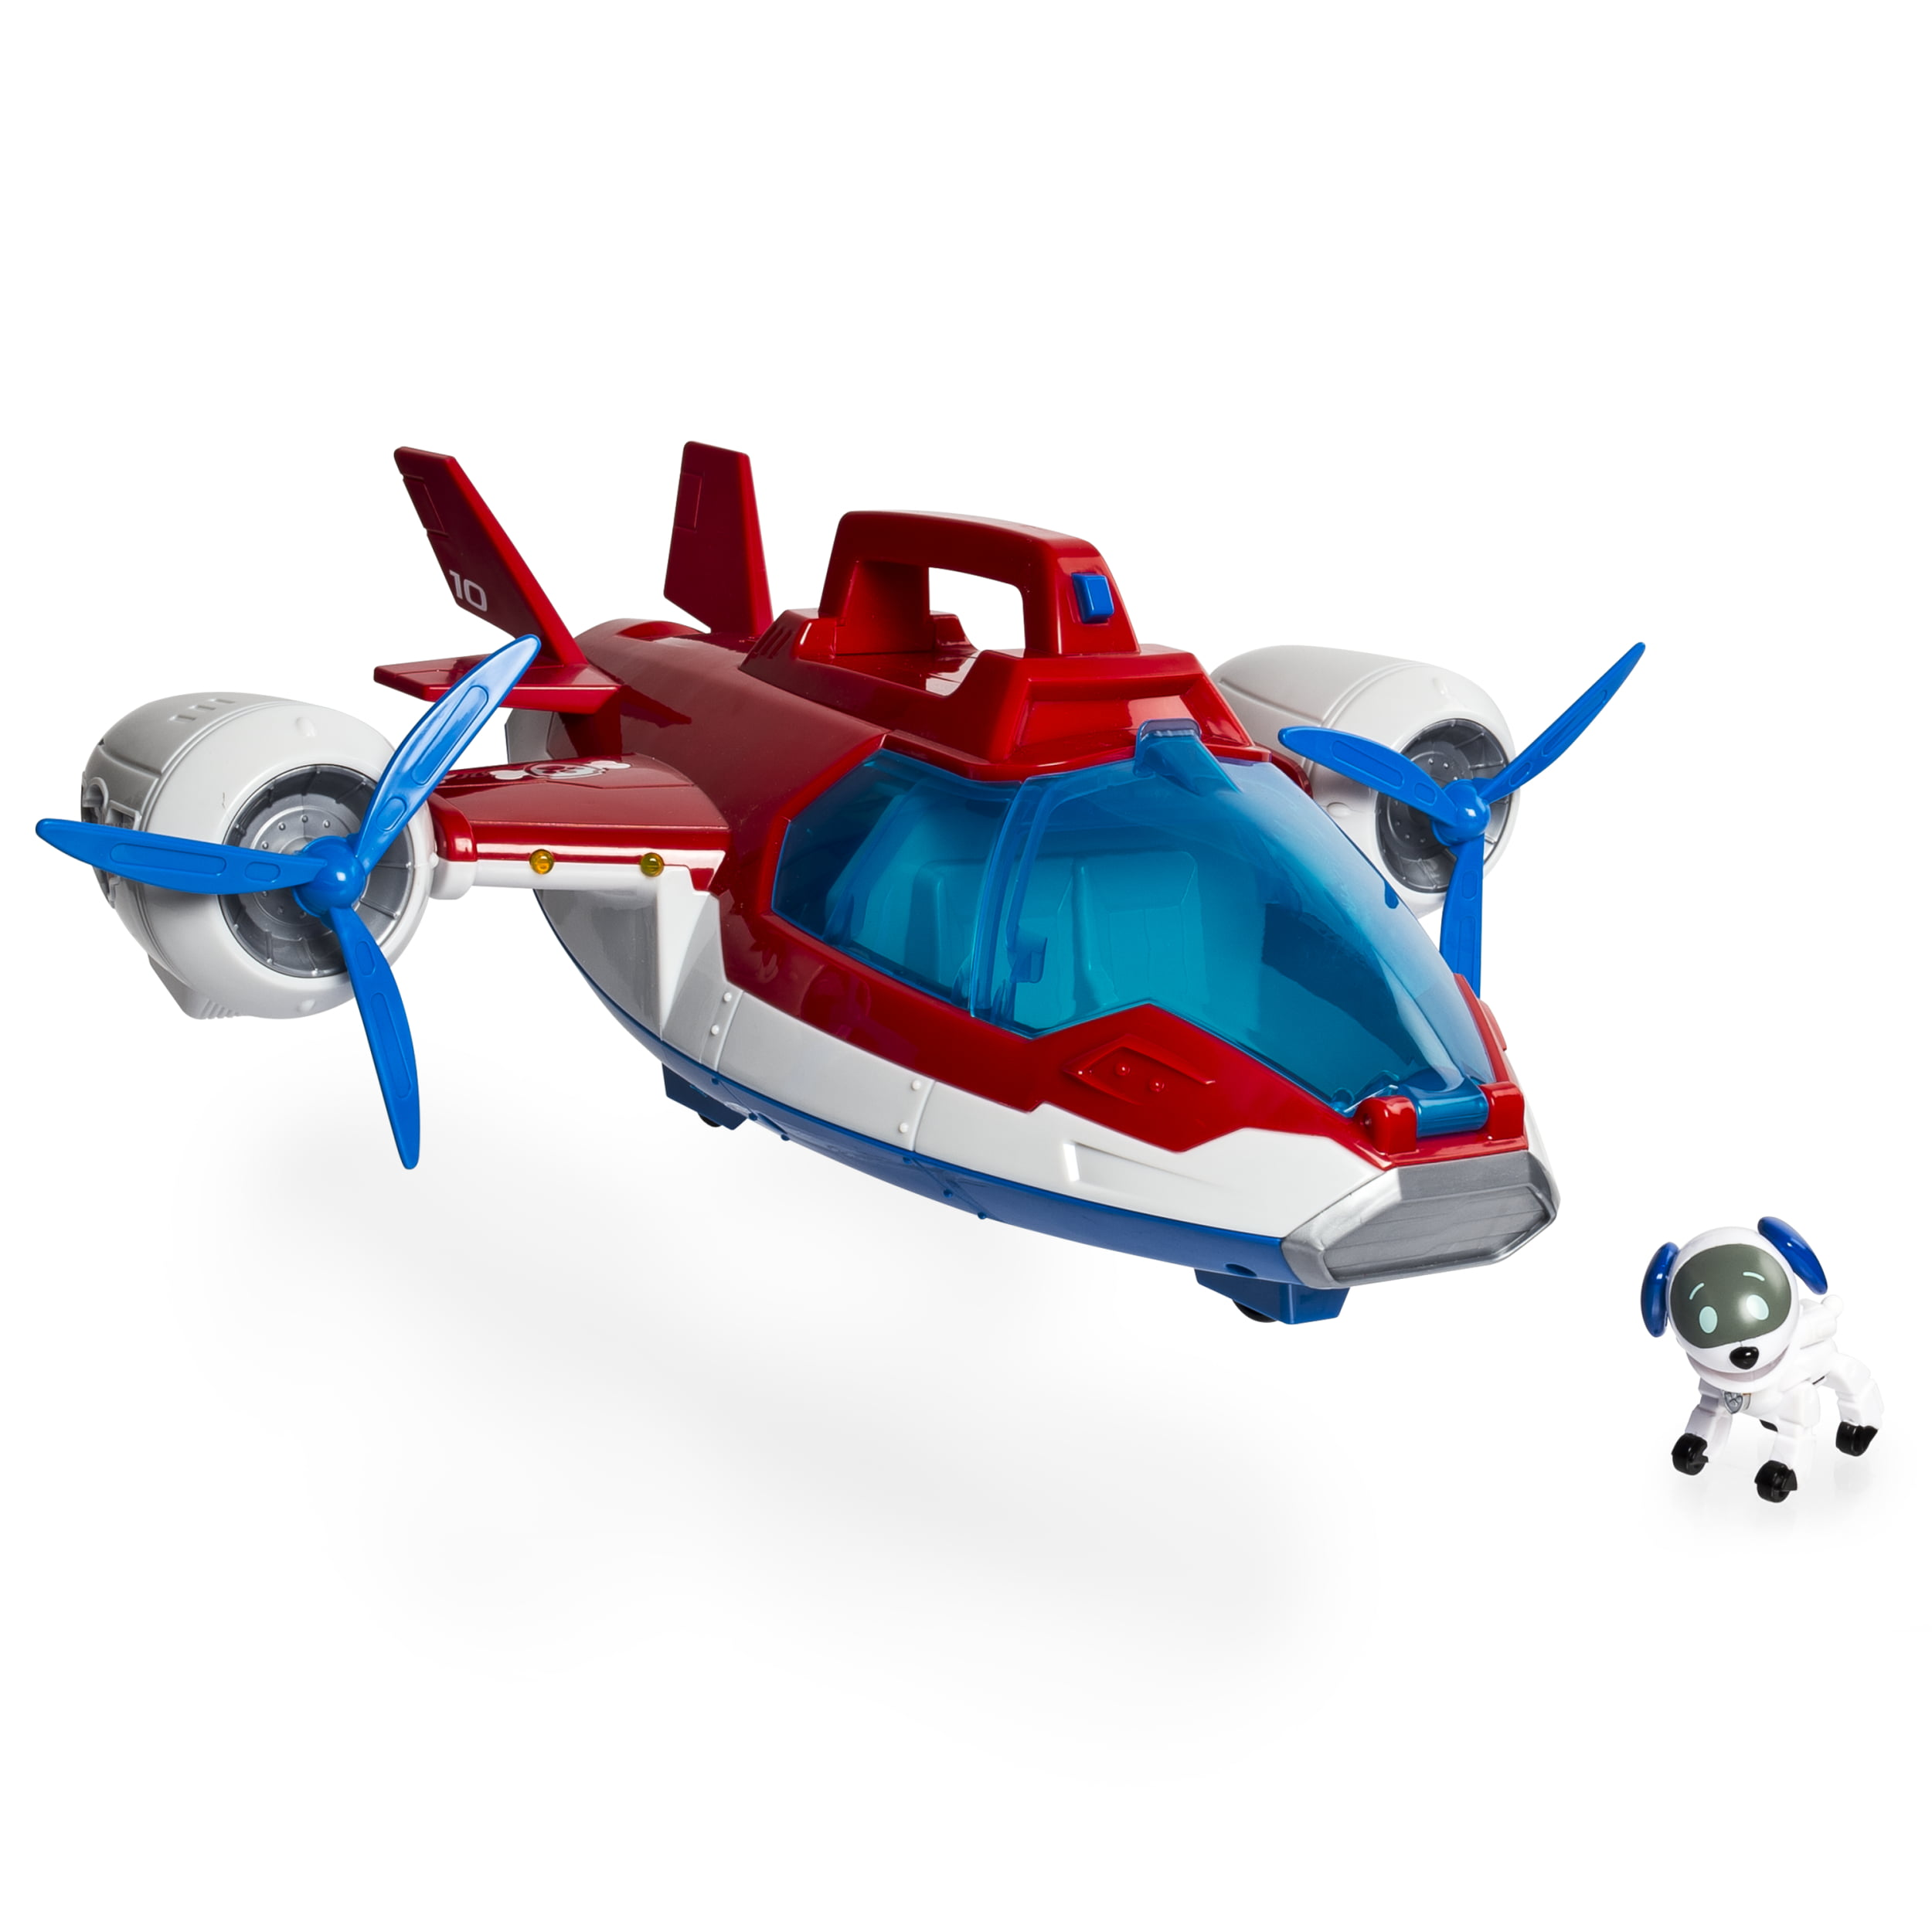 Paw Patrol, Lights and Sounds Air Patroller Plane by Spin Master Ltd